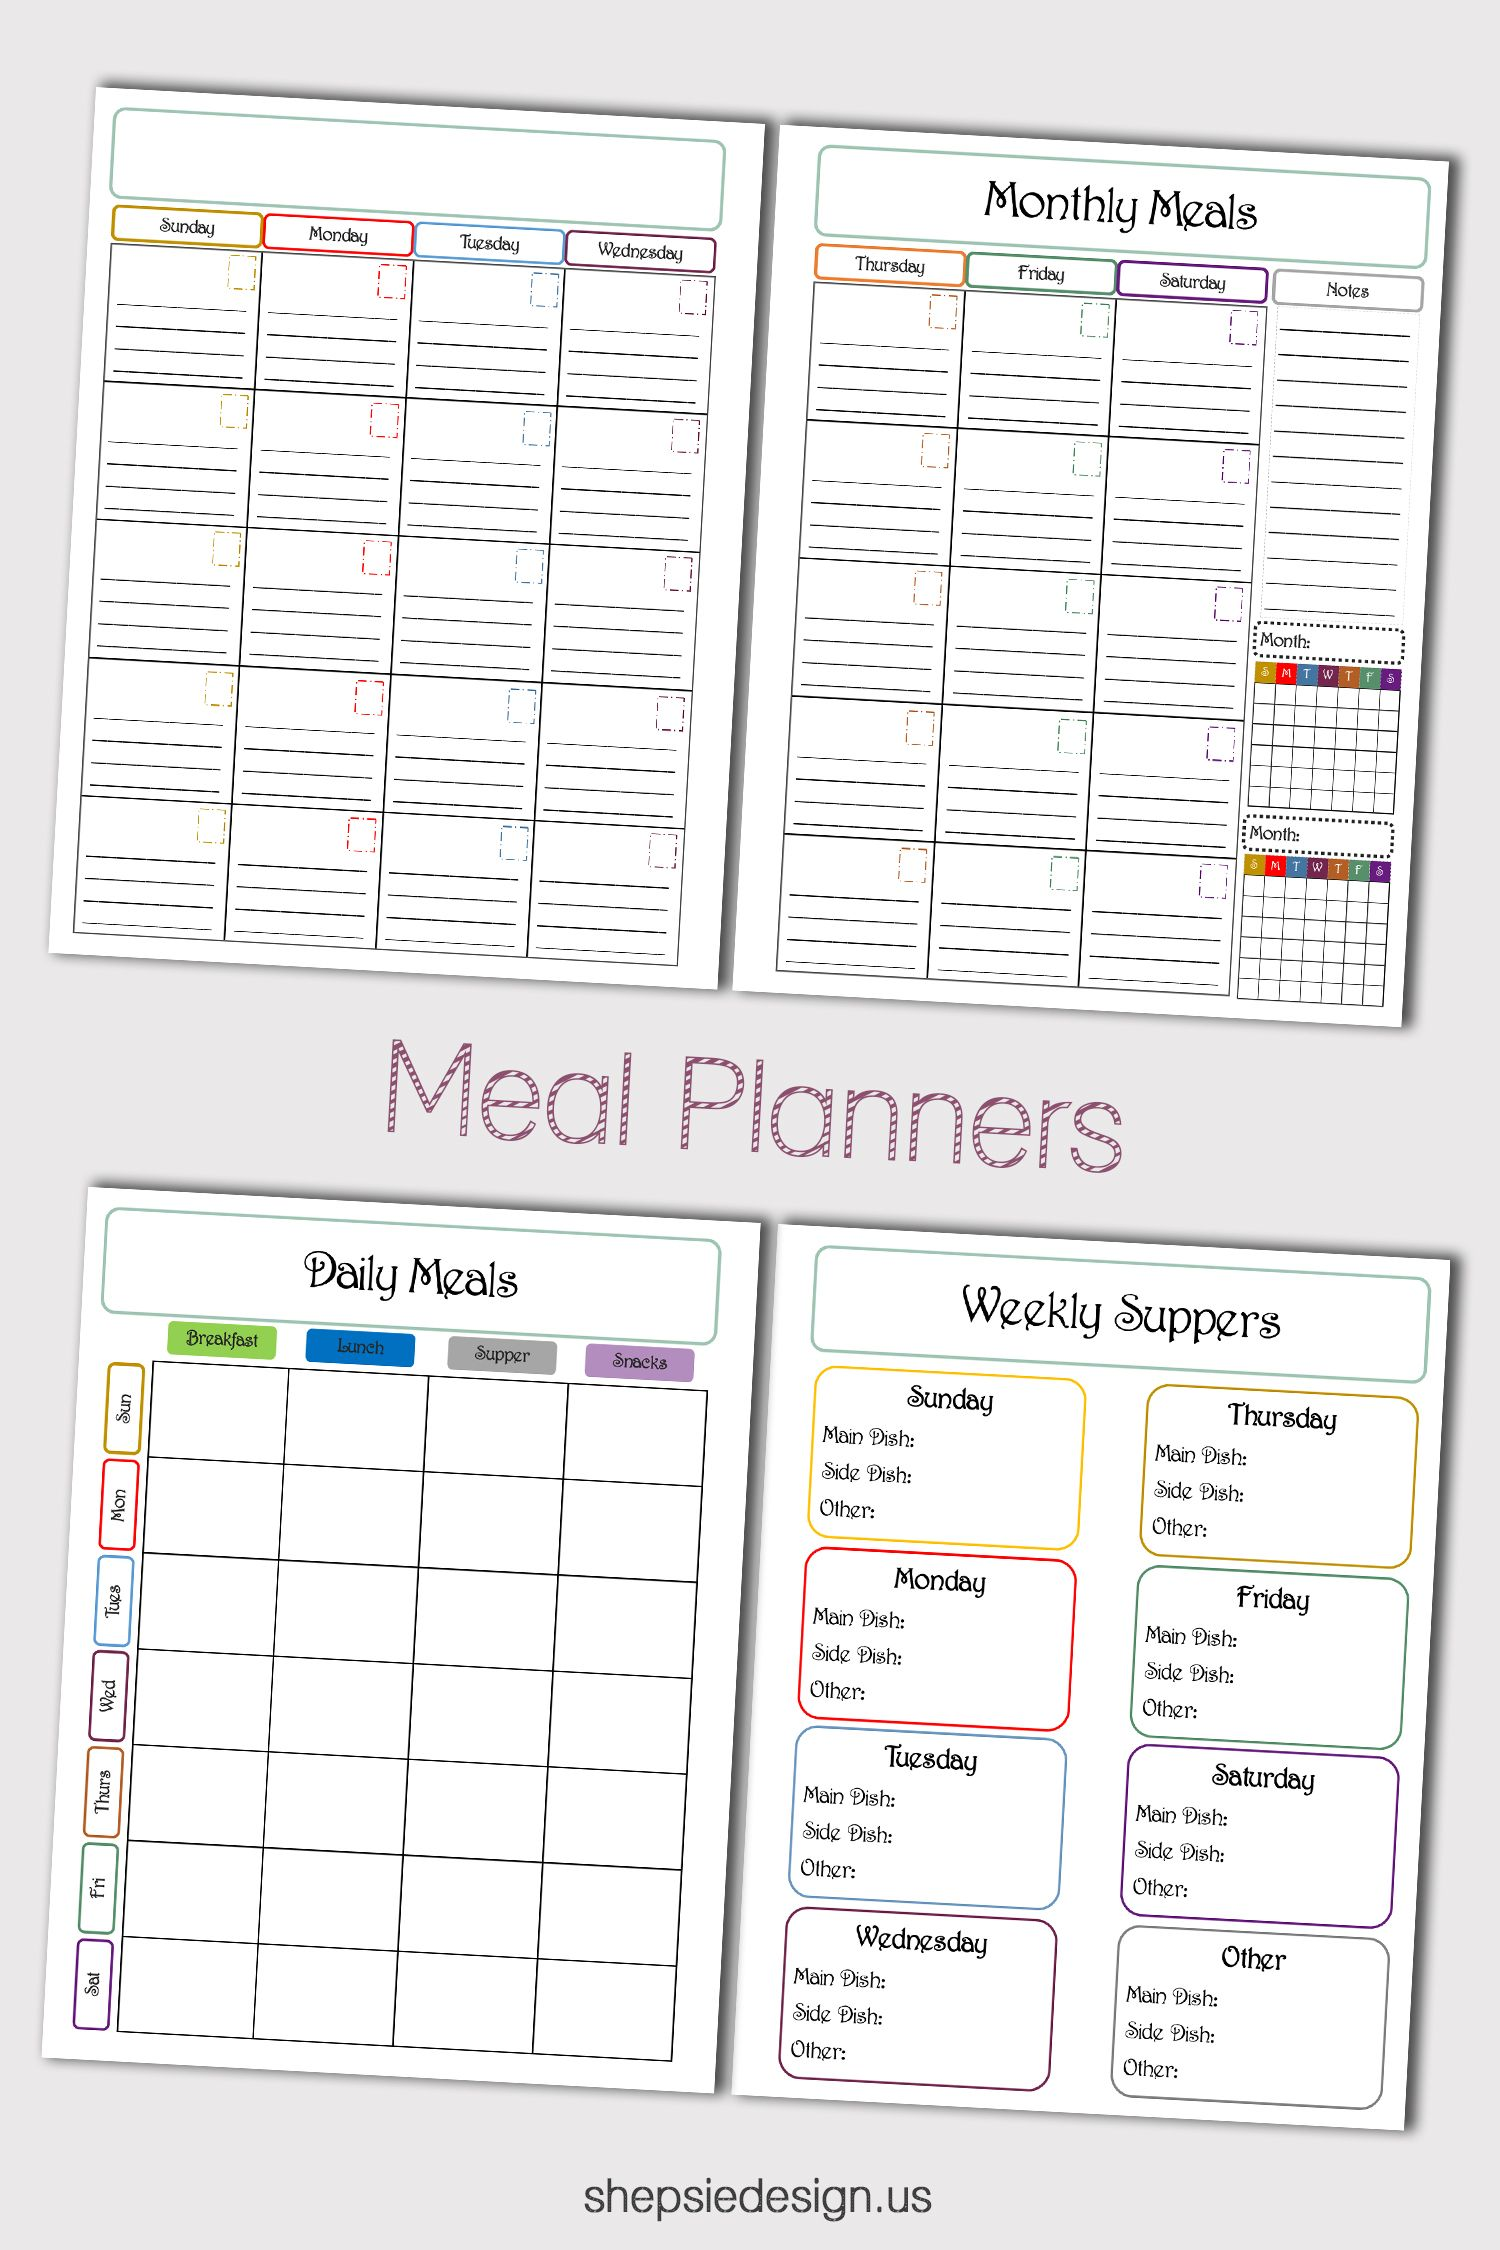 Plan Your Monthly Meals Daily Meals And Weekly Suppers All This